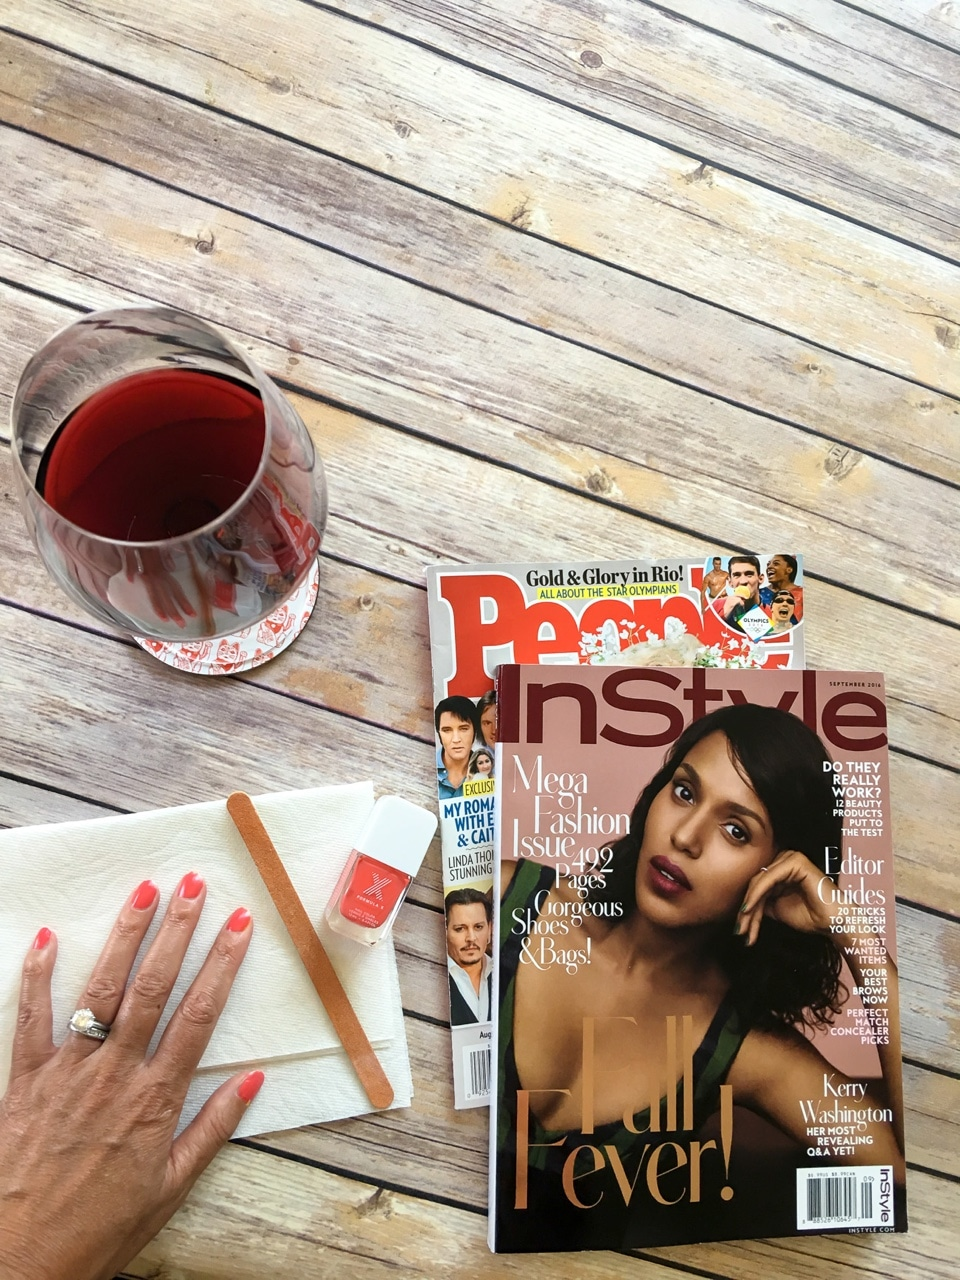 Magazines, manicure and wine - what more could you ask for?